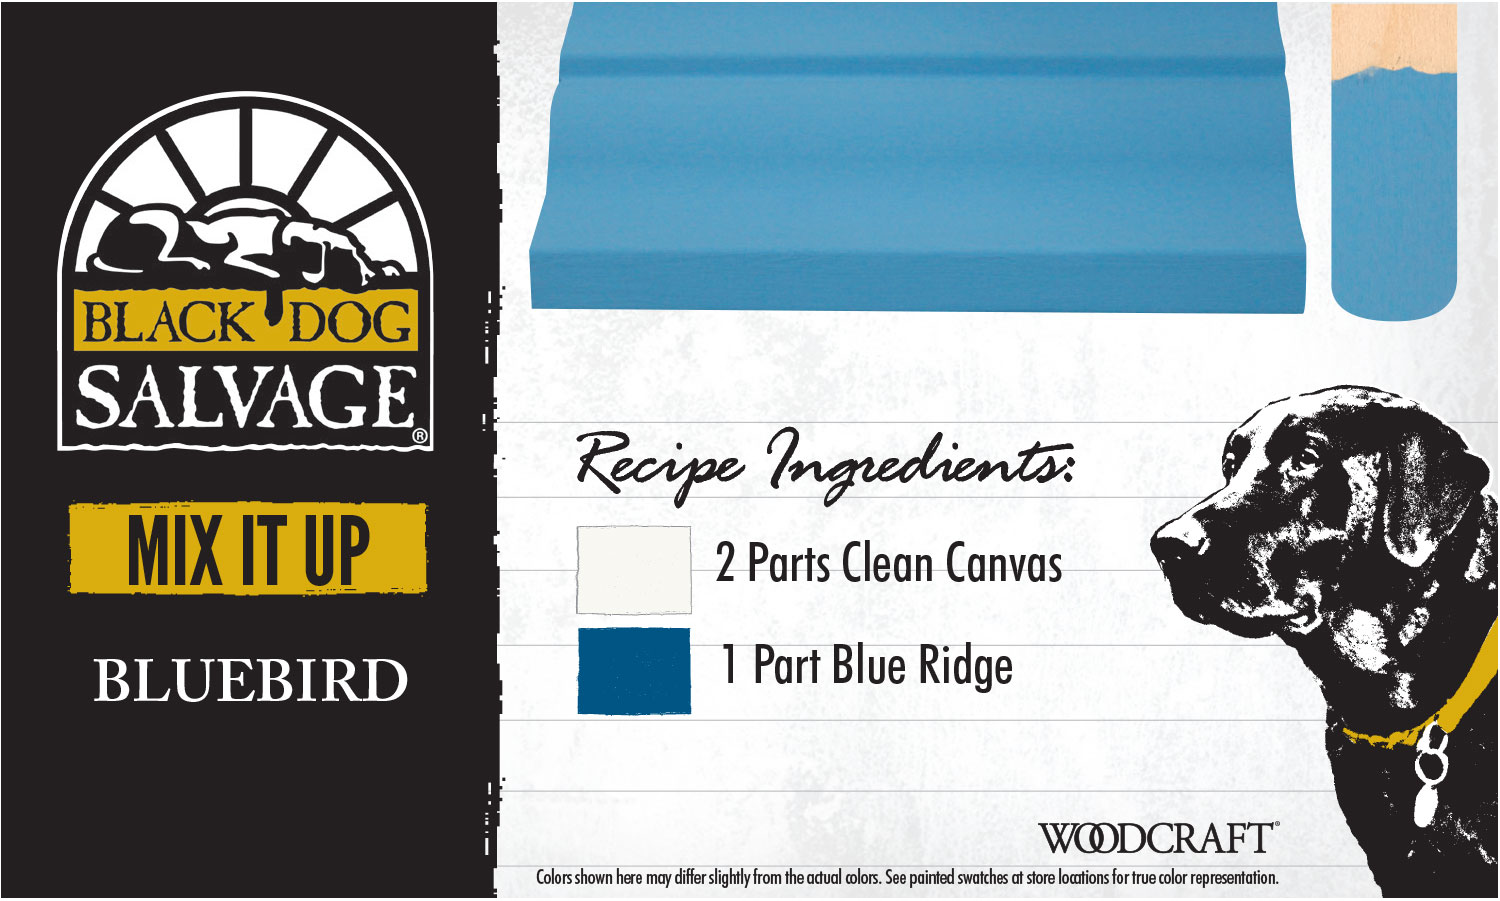 """""""Blue Bird"""" is made from2 Parts """"Clean Canvas"""" and 1 Part """"Blue Ridge"""""""